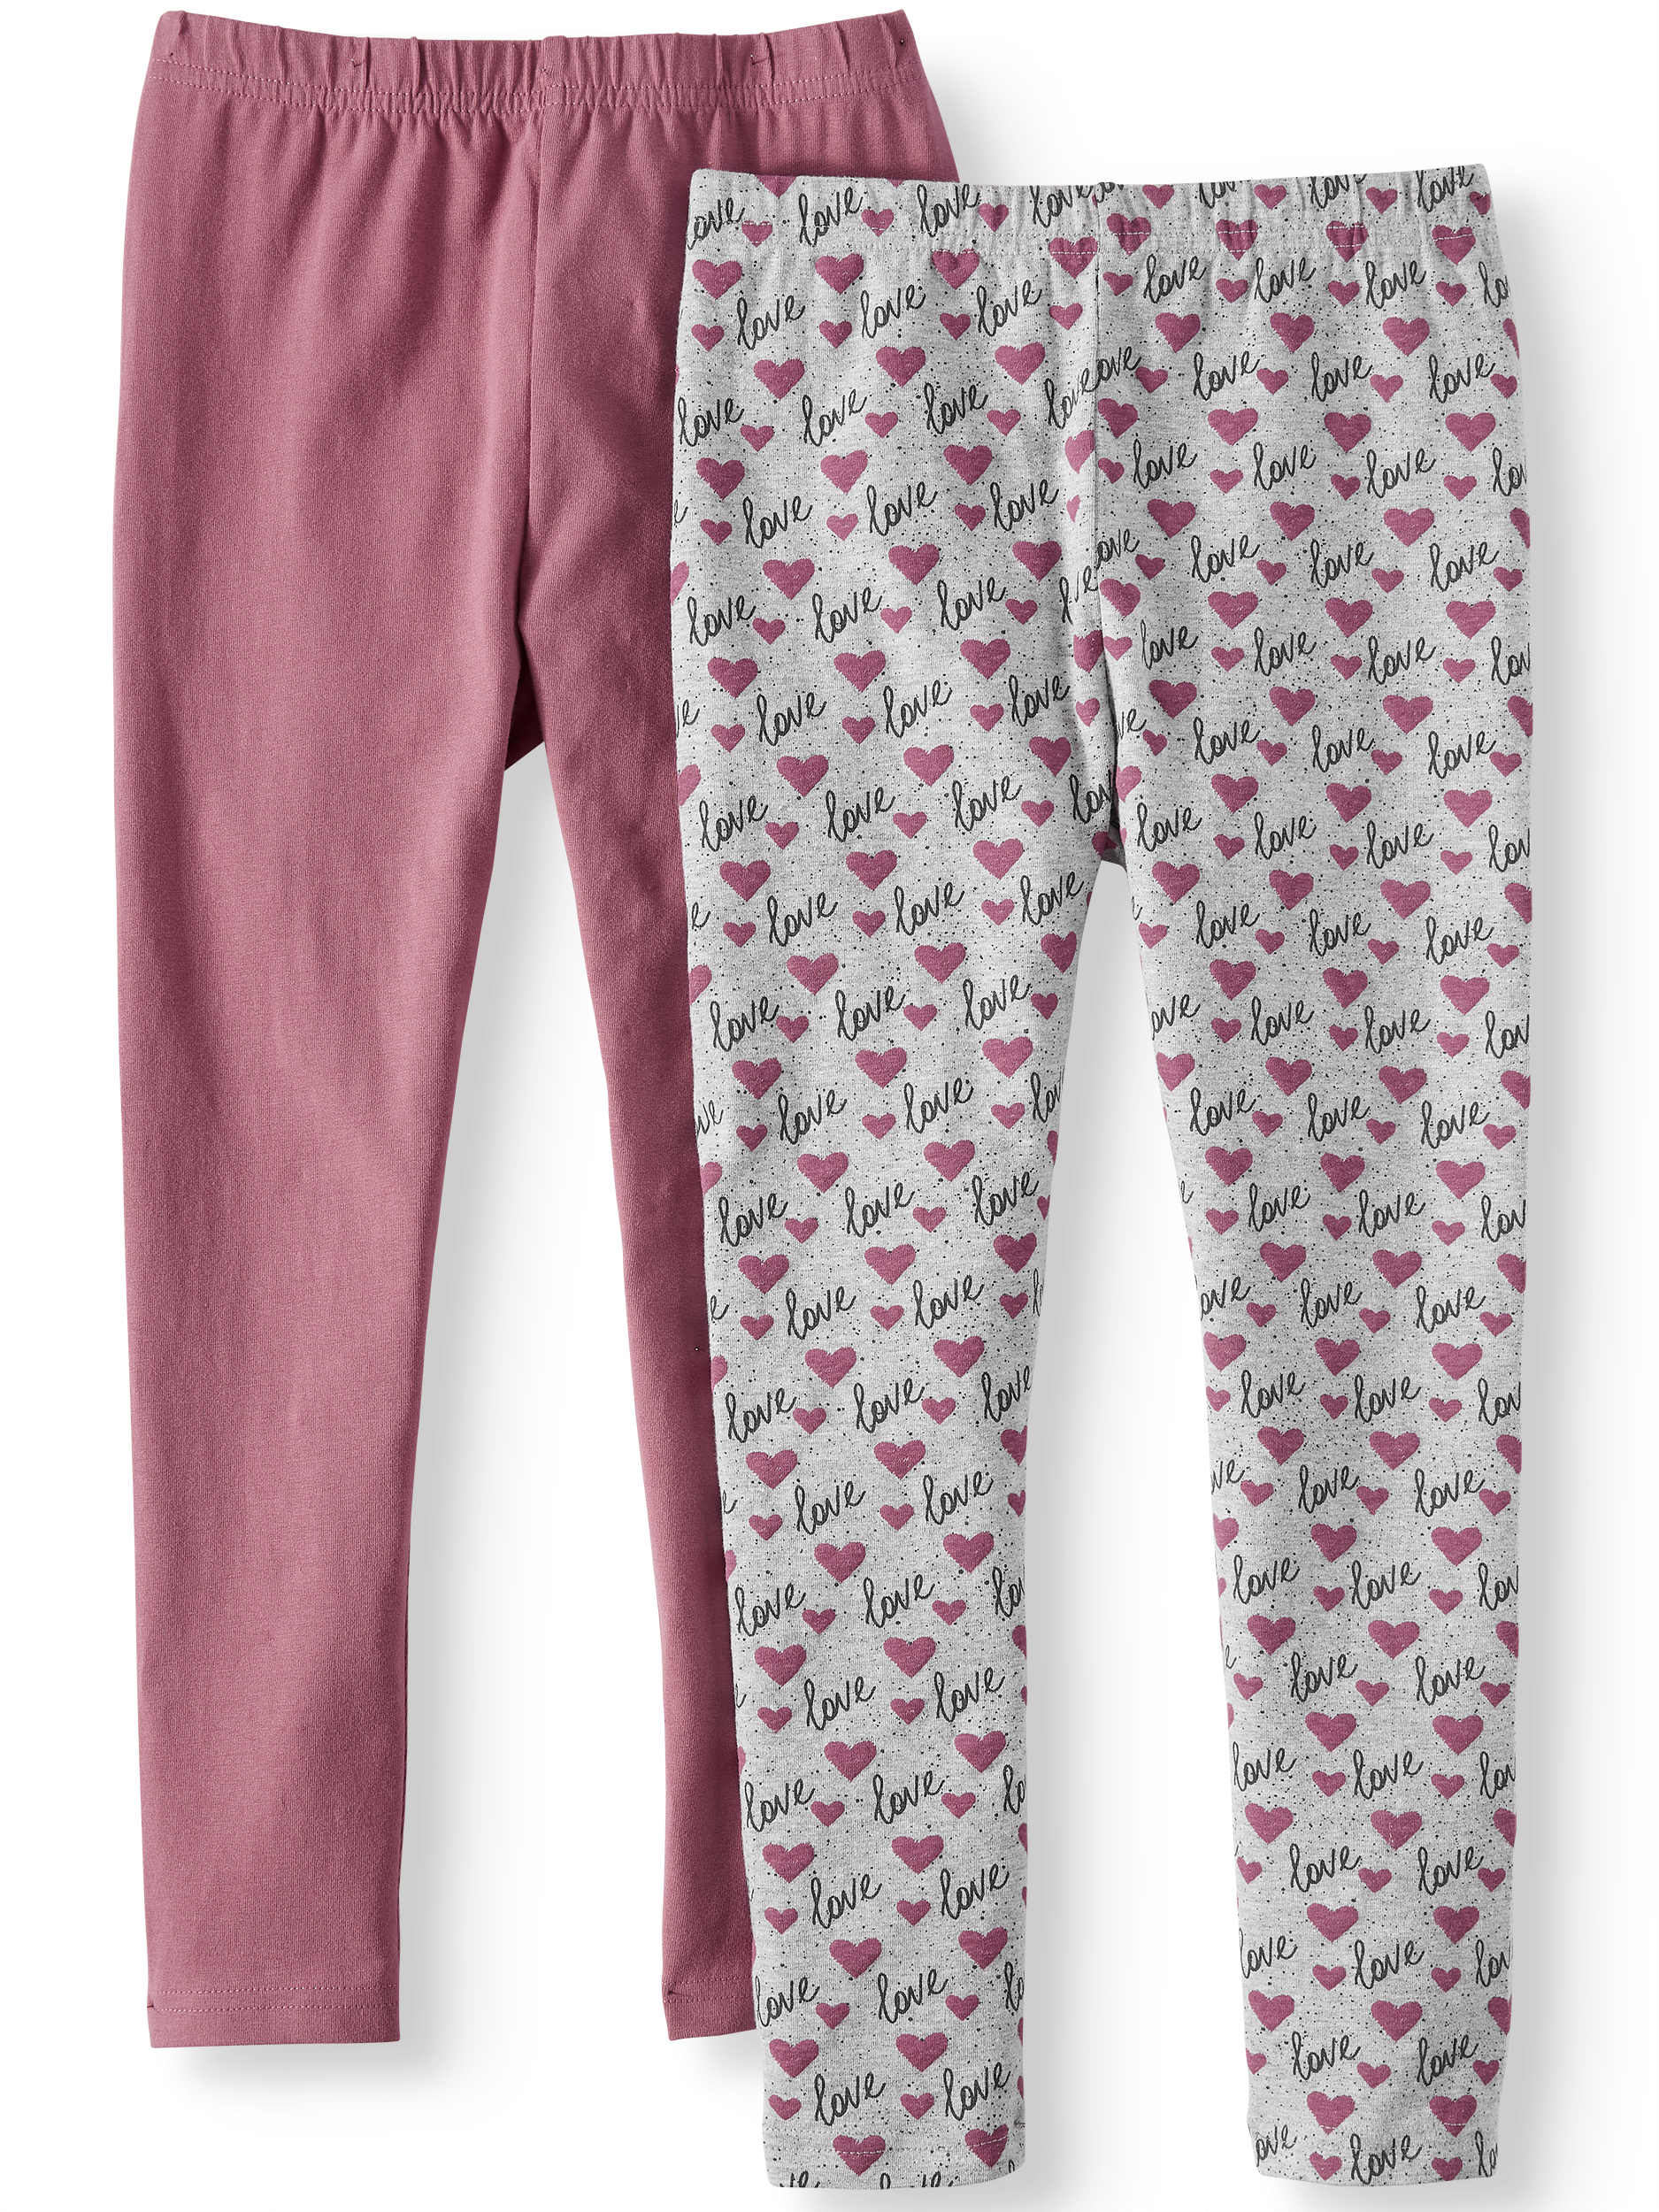 Girls' Heart Print and Solid Leggings, 2-Pack